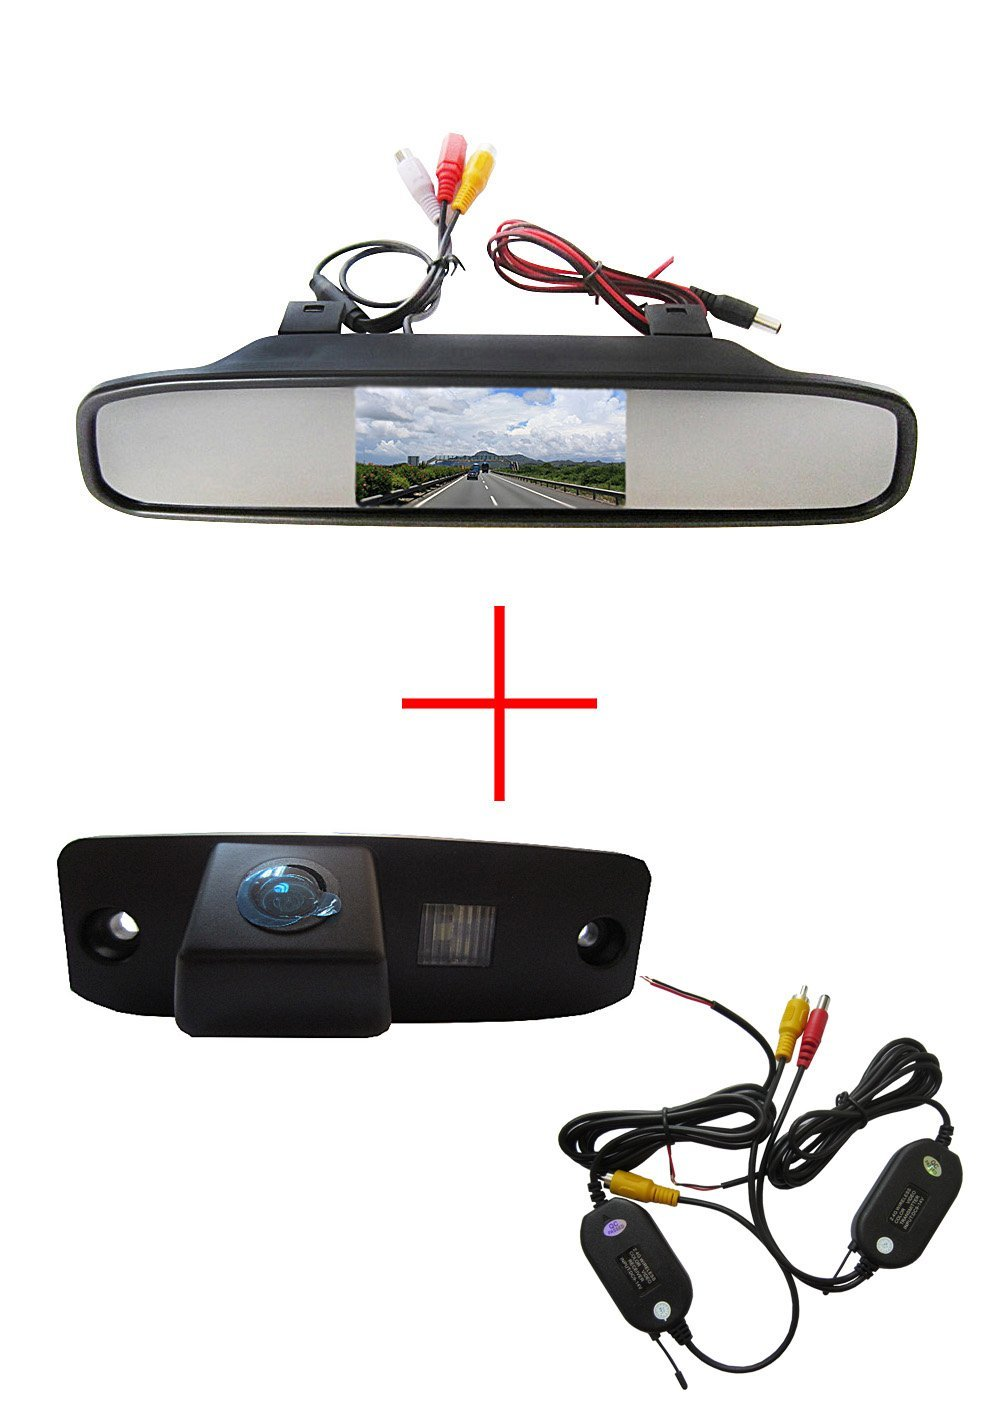 Wireless Auto Vehicle CCD HD Color Car Back up Rear View Reverse Reversing Parking Camera for KIA Carens Oprius Sorento Borrego Ceed Sportage R, with 4.3 Inch Color LCD TFT Rear View Mirror Monitor Screen Car Backup Monitor